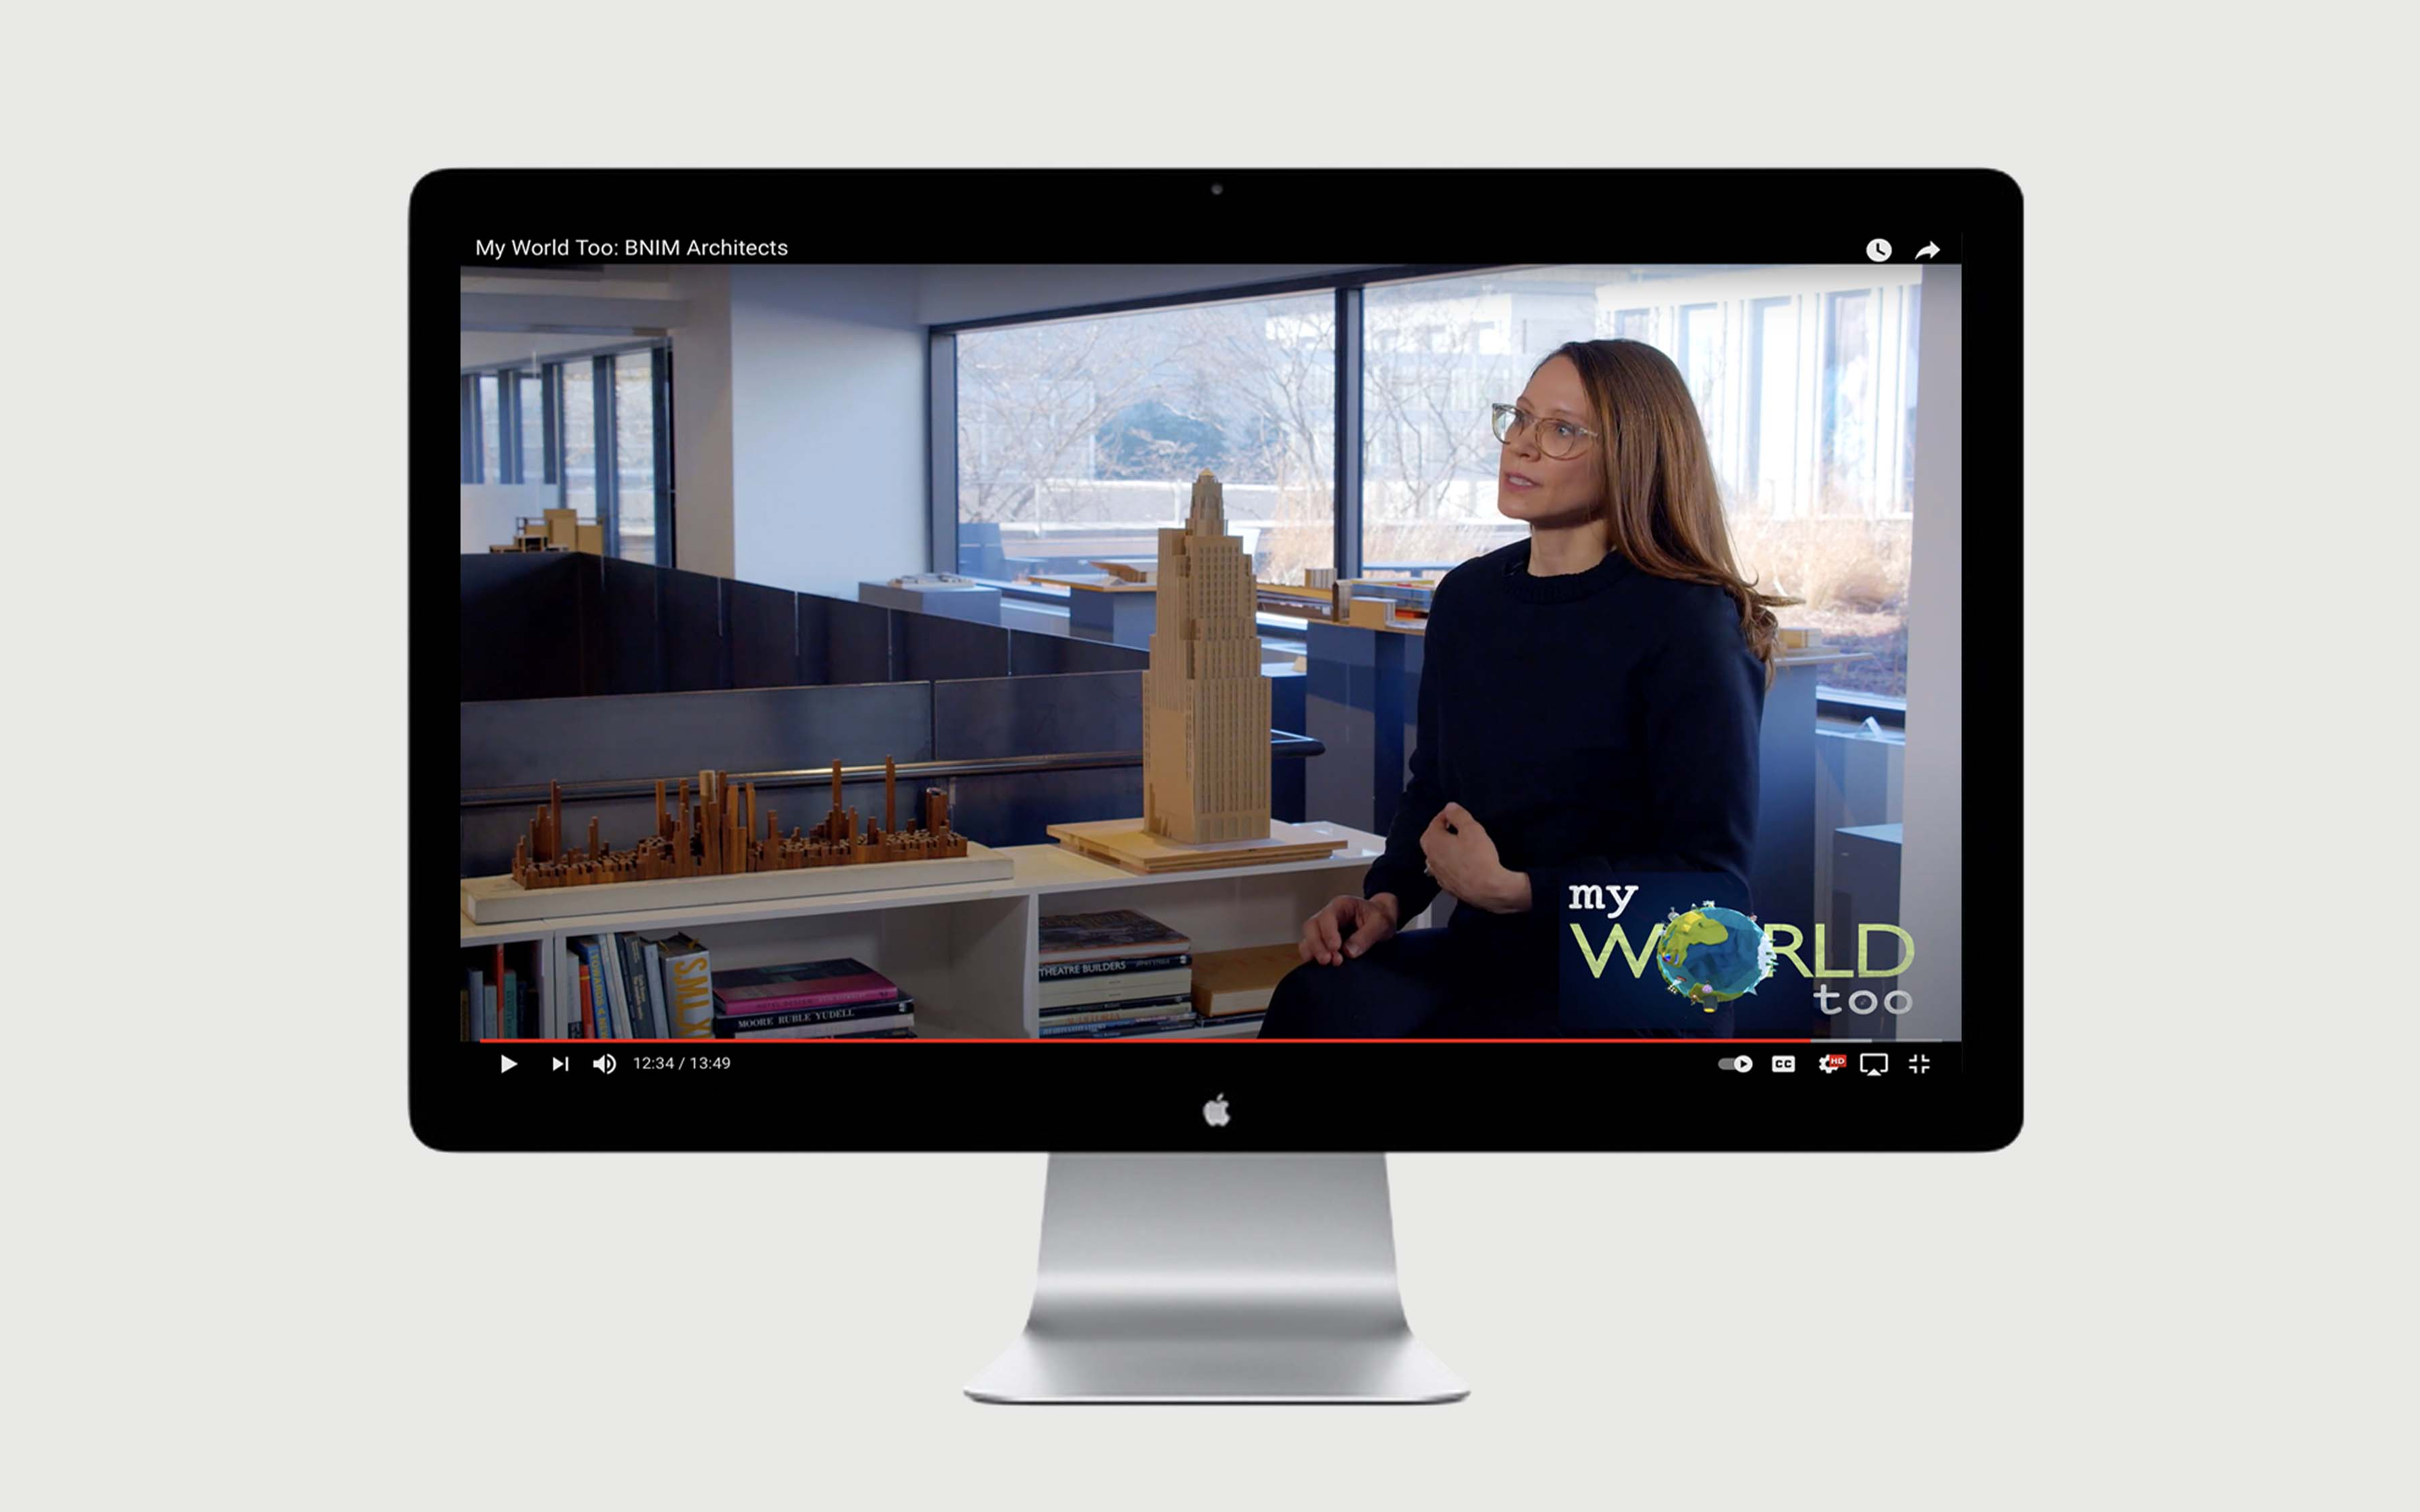 My World Too: BNIM Architects to Air on PBS Nationwide